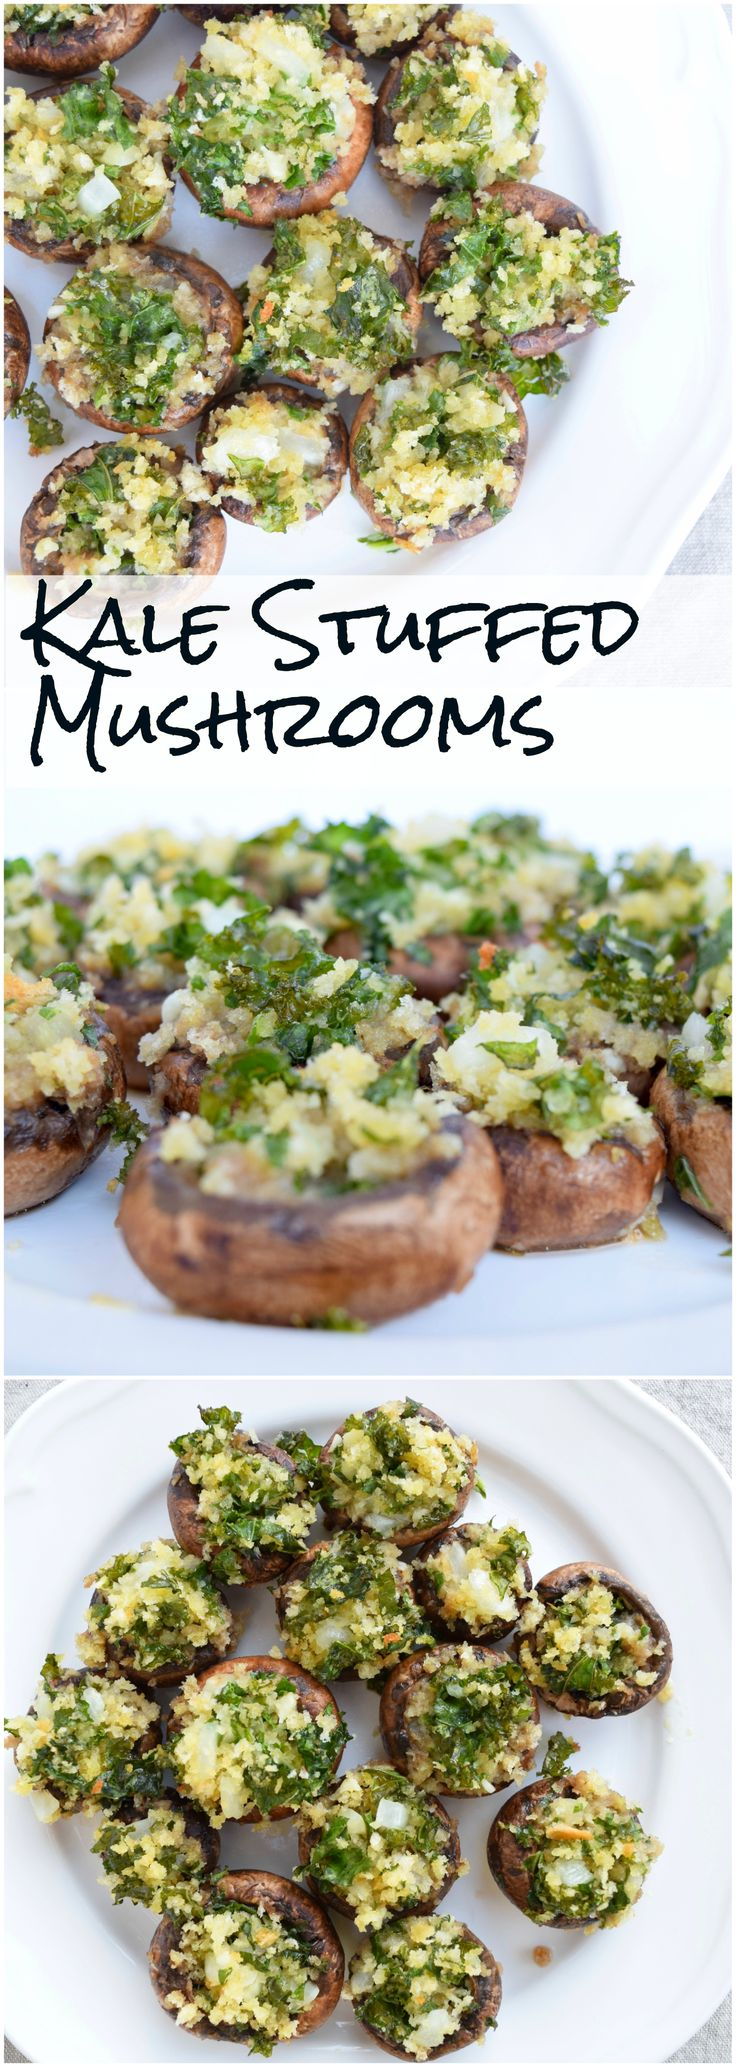 Mushrooms are stuffed to perfection with garlic and kale.